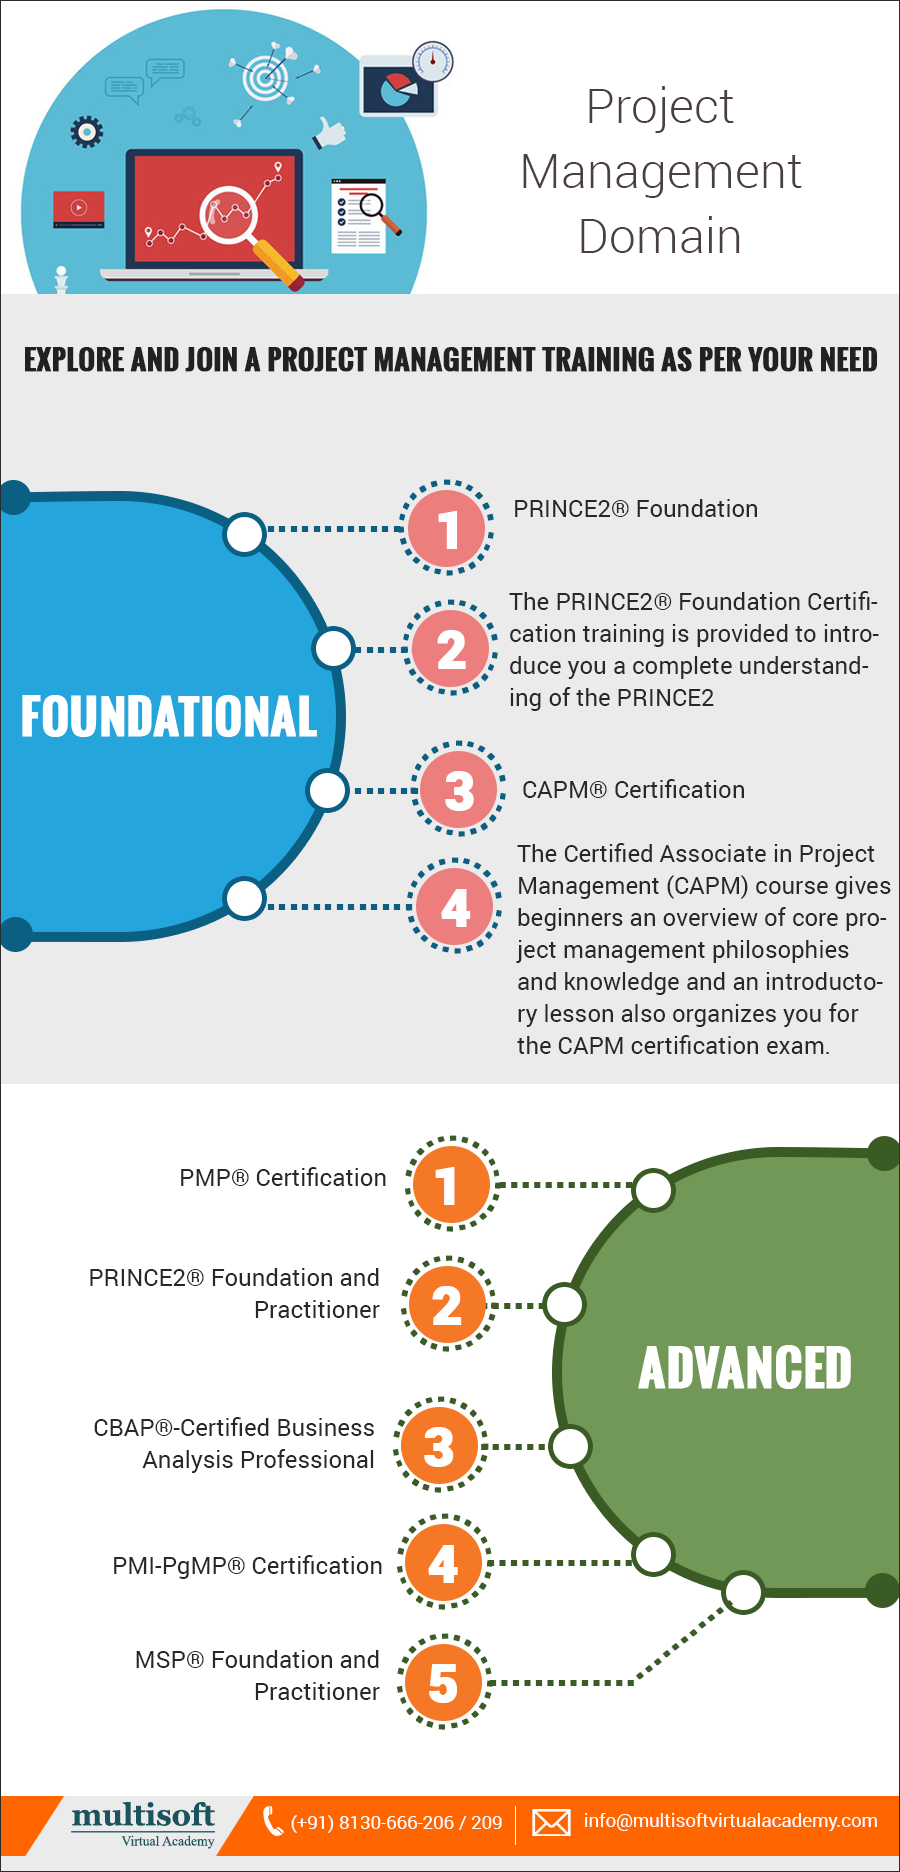 Pin by Multisoft Virtual Academy on Project Management